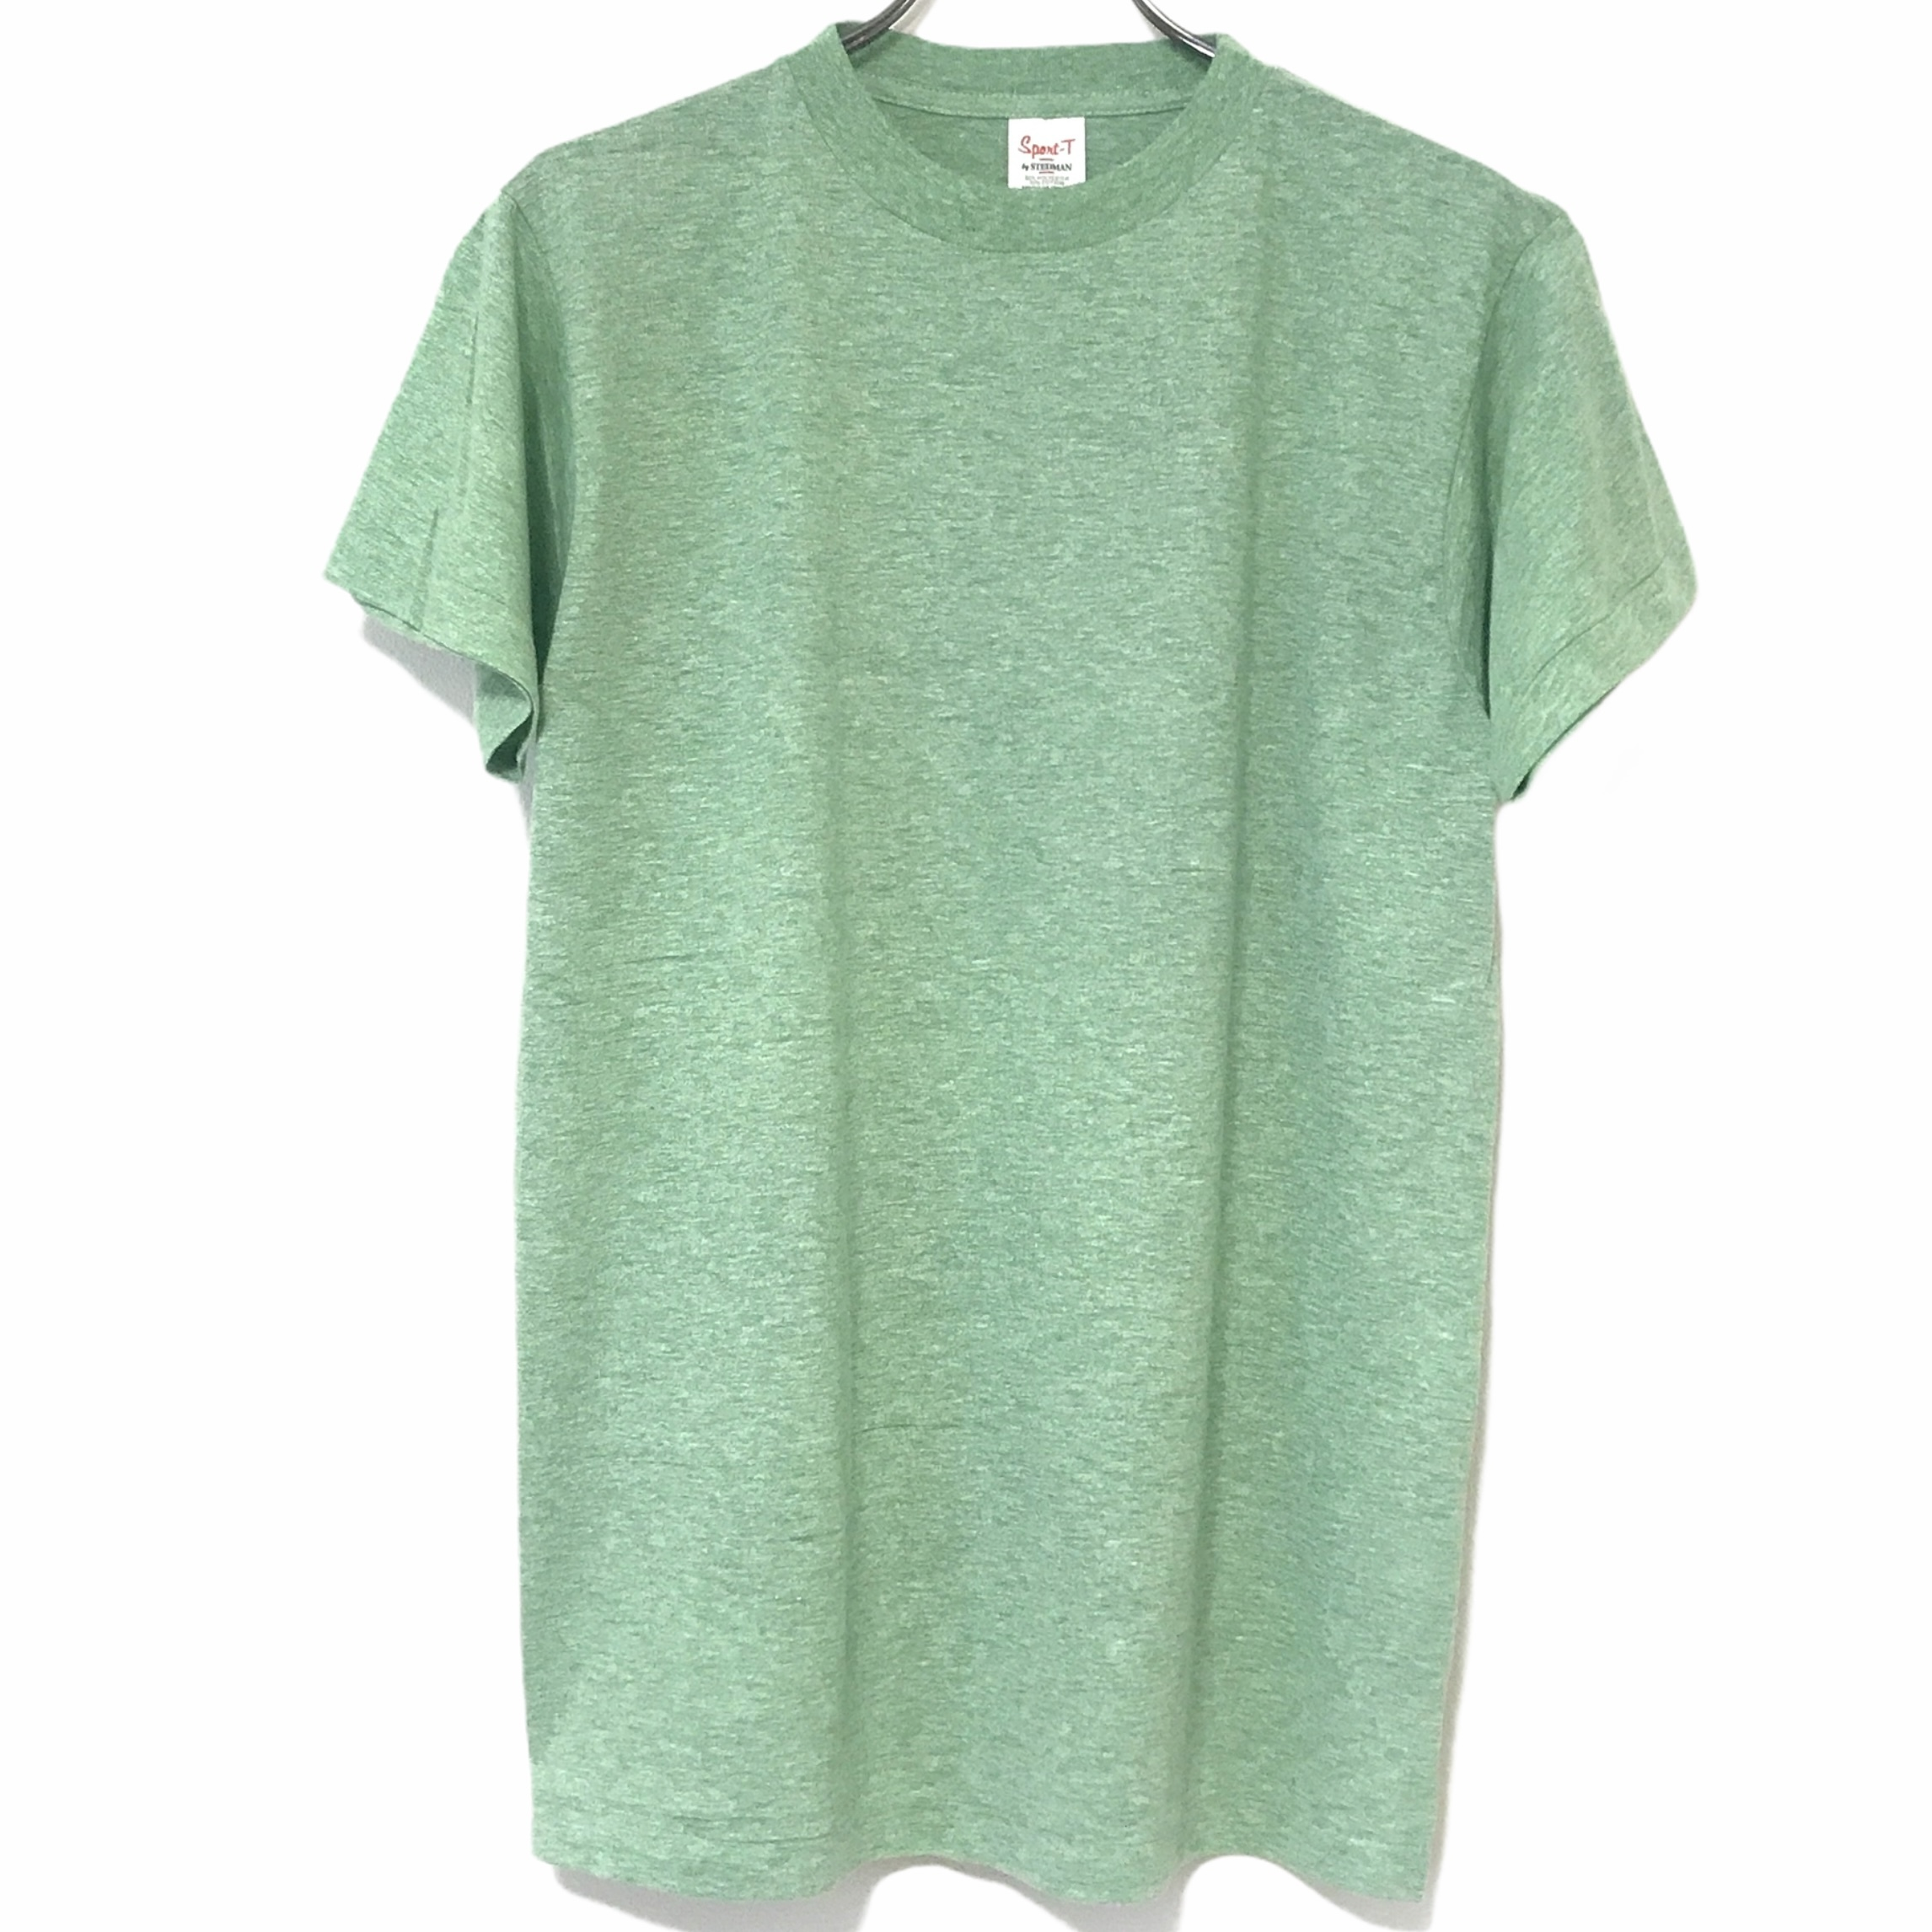 Dead Stock!70's Sport-T by STEDMAN T-shirt made in USA Green